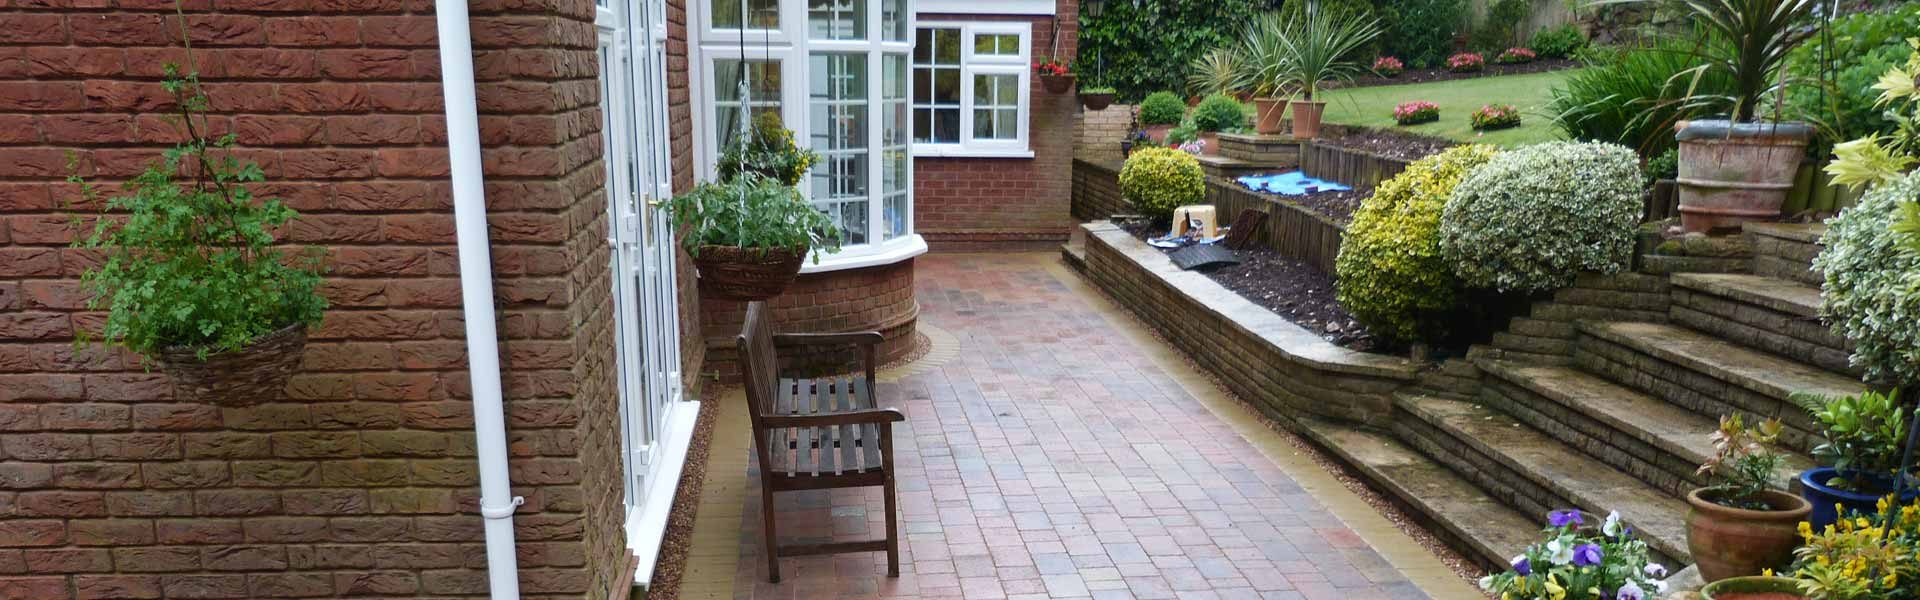 Patios and Paving Coventry